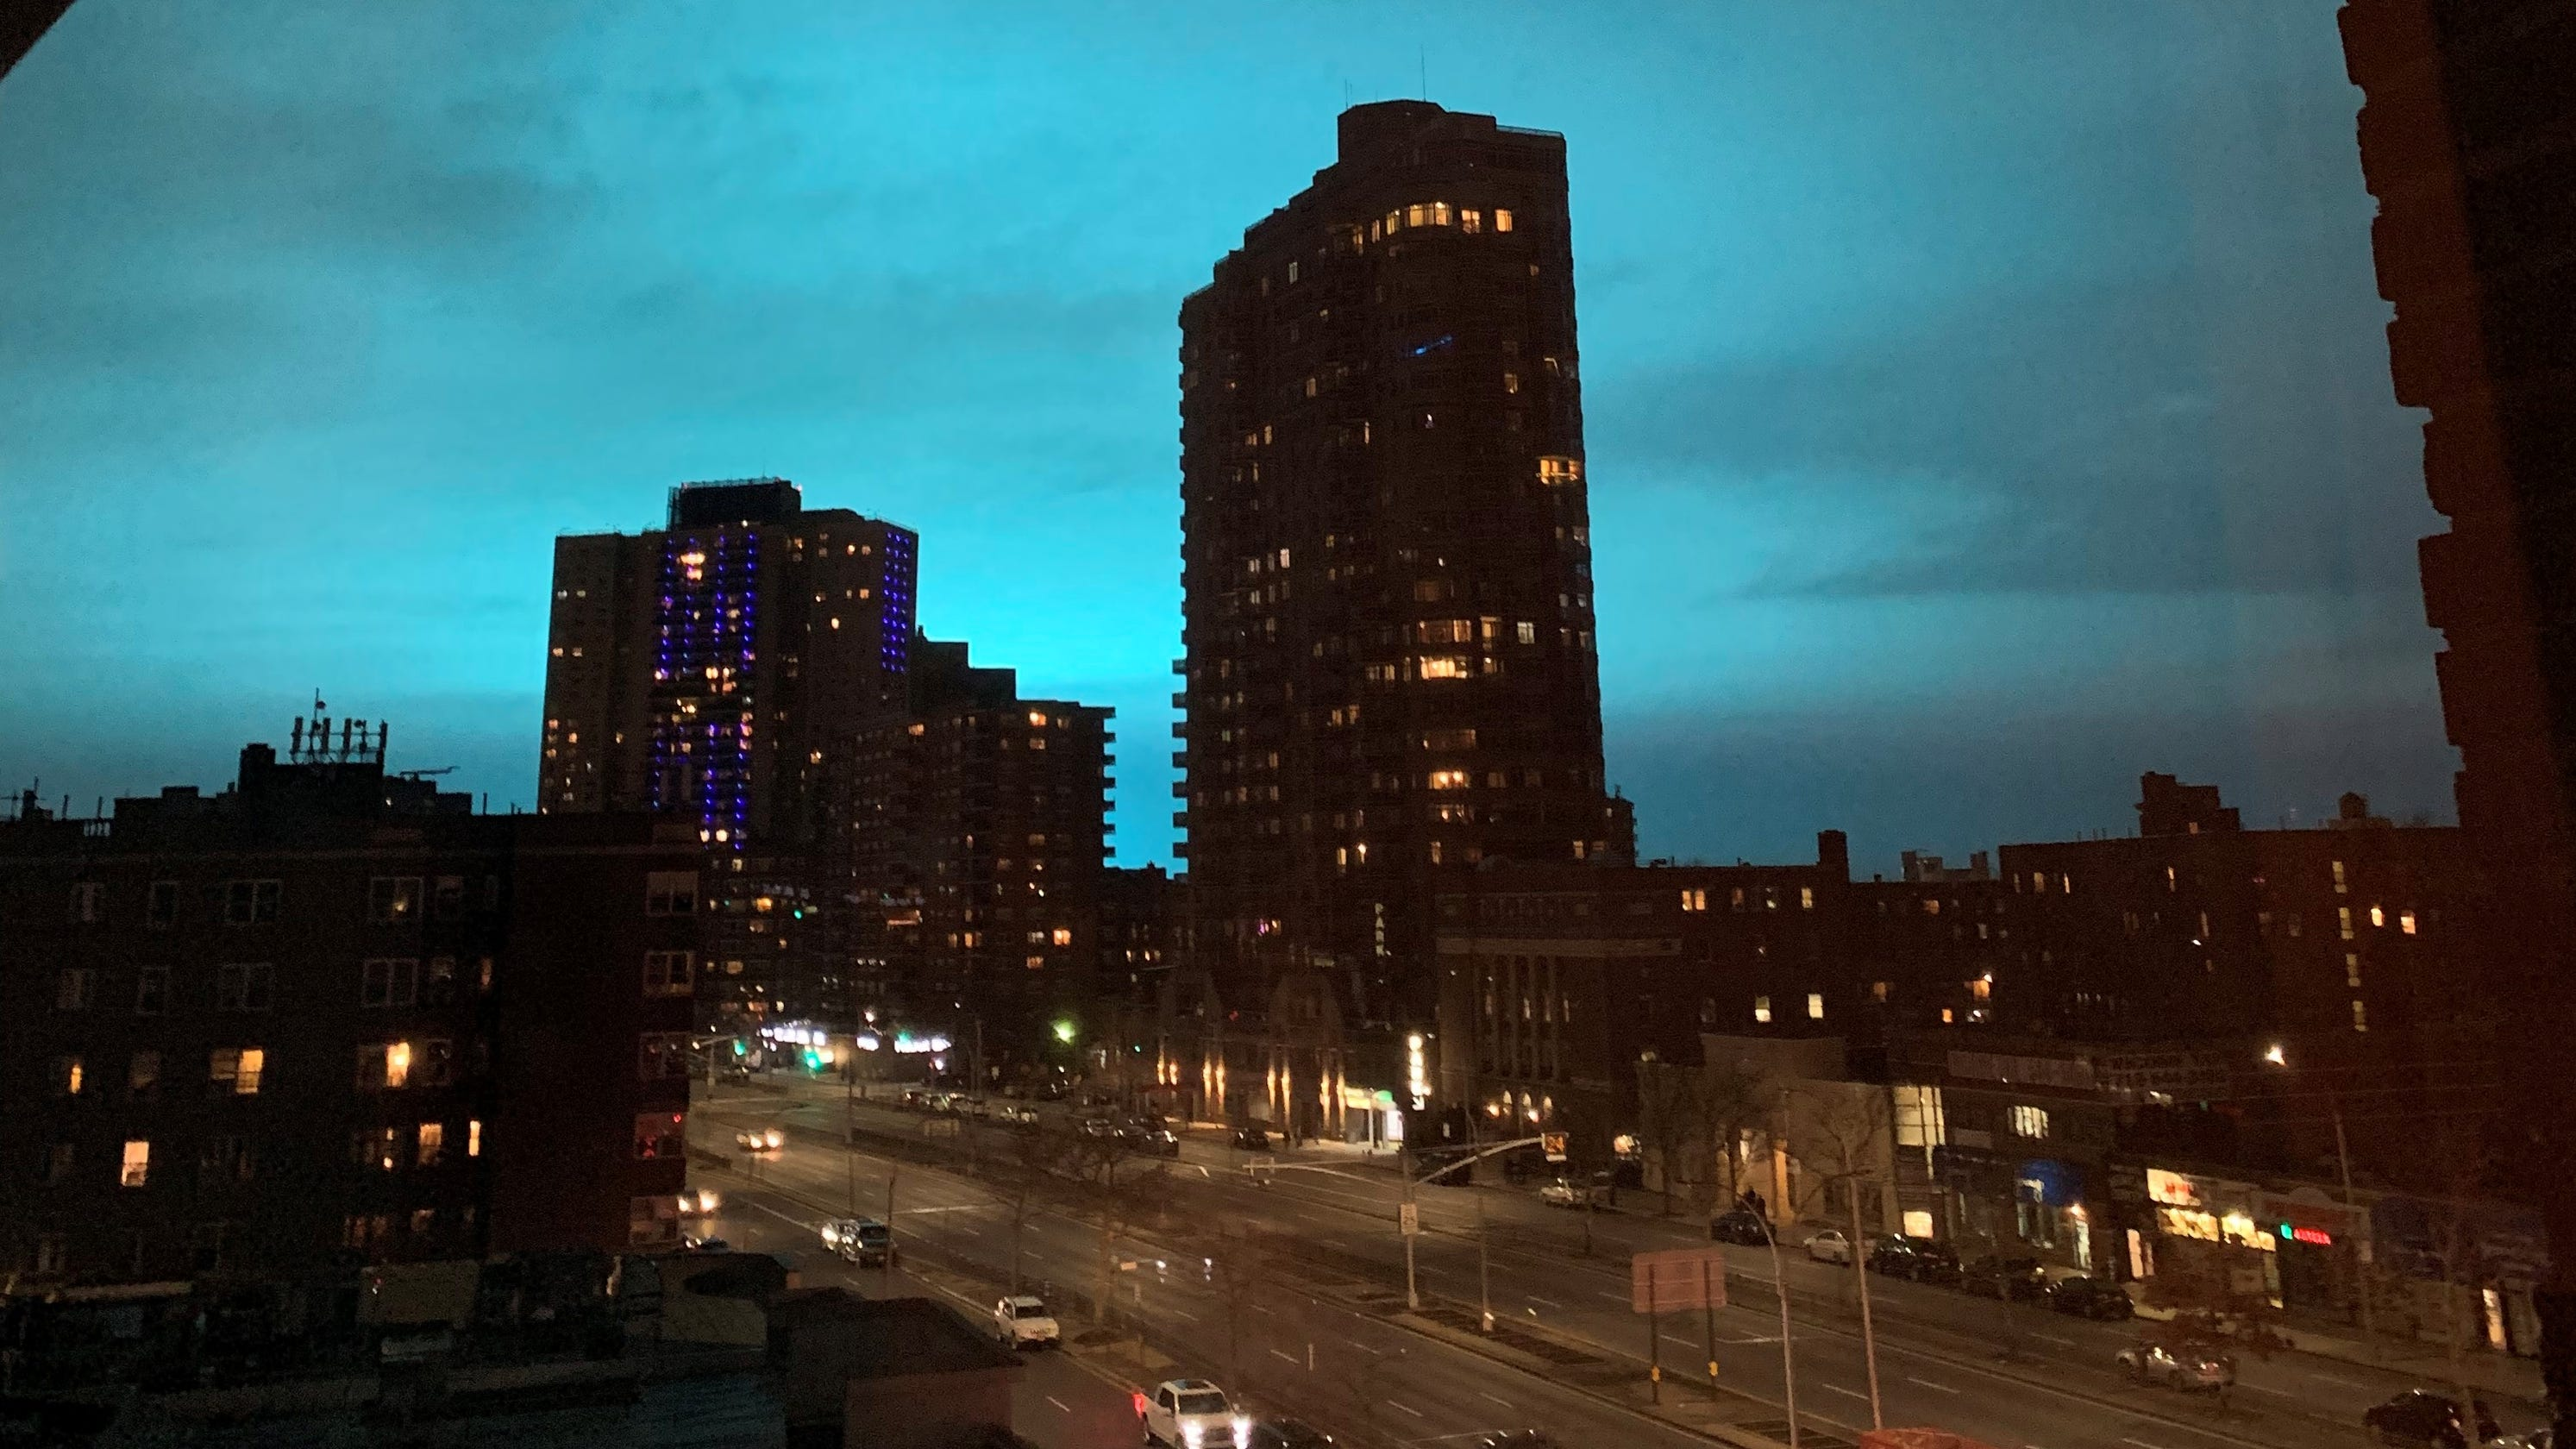 Night sky in Astoria, Queens turns bright blue after Con Ed